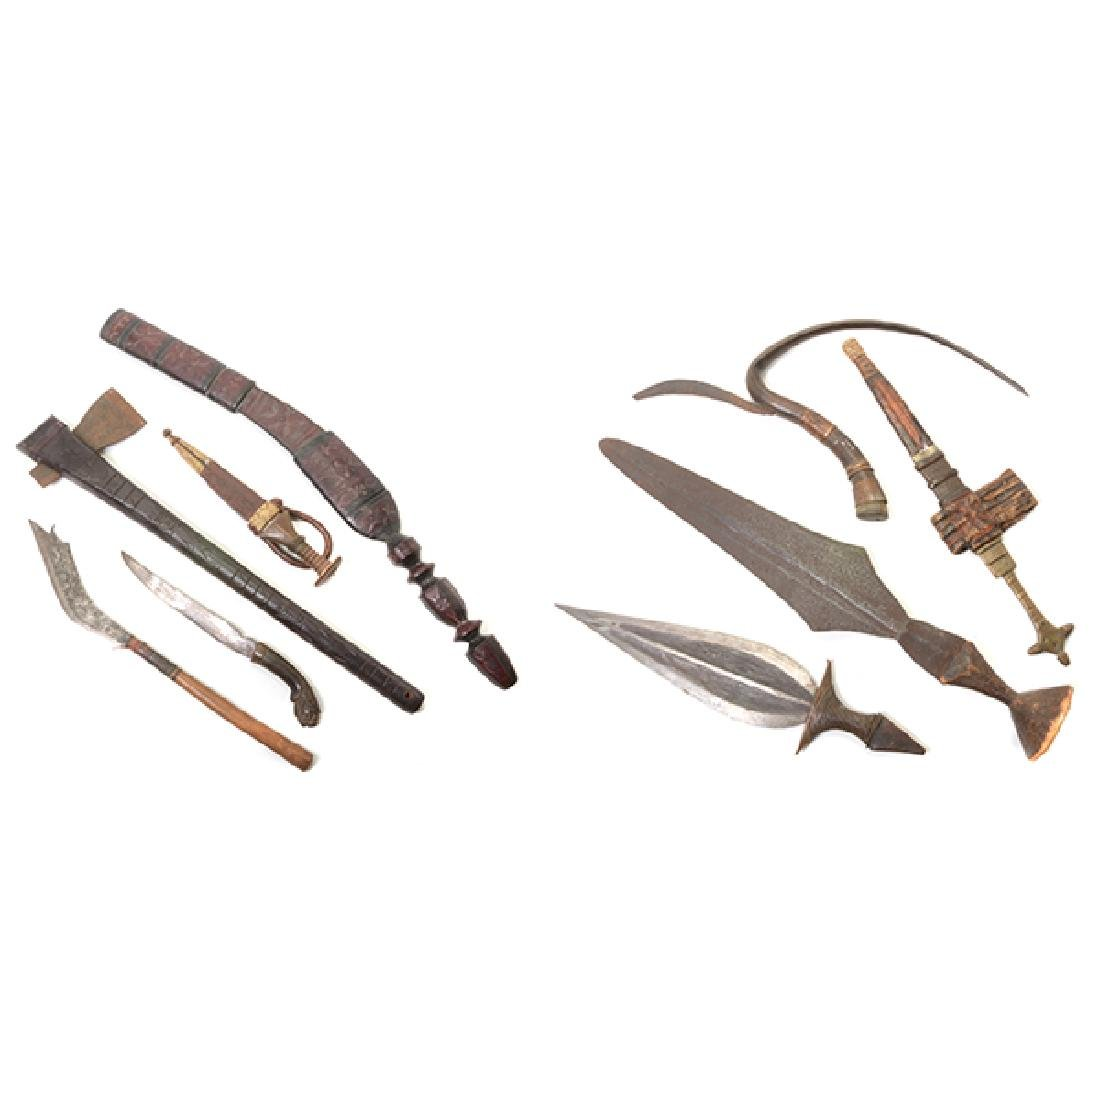 Collection of Southeast Asian and African Blades with